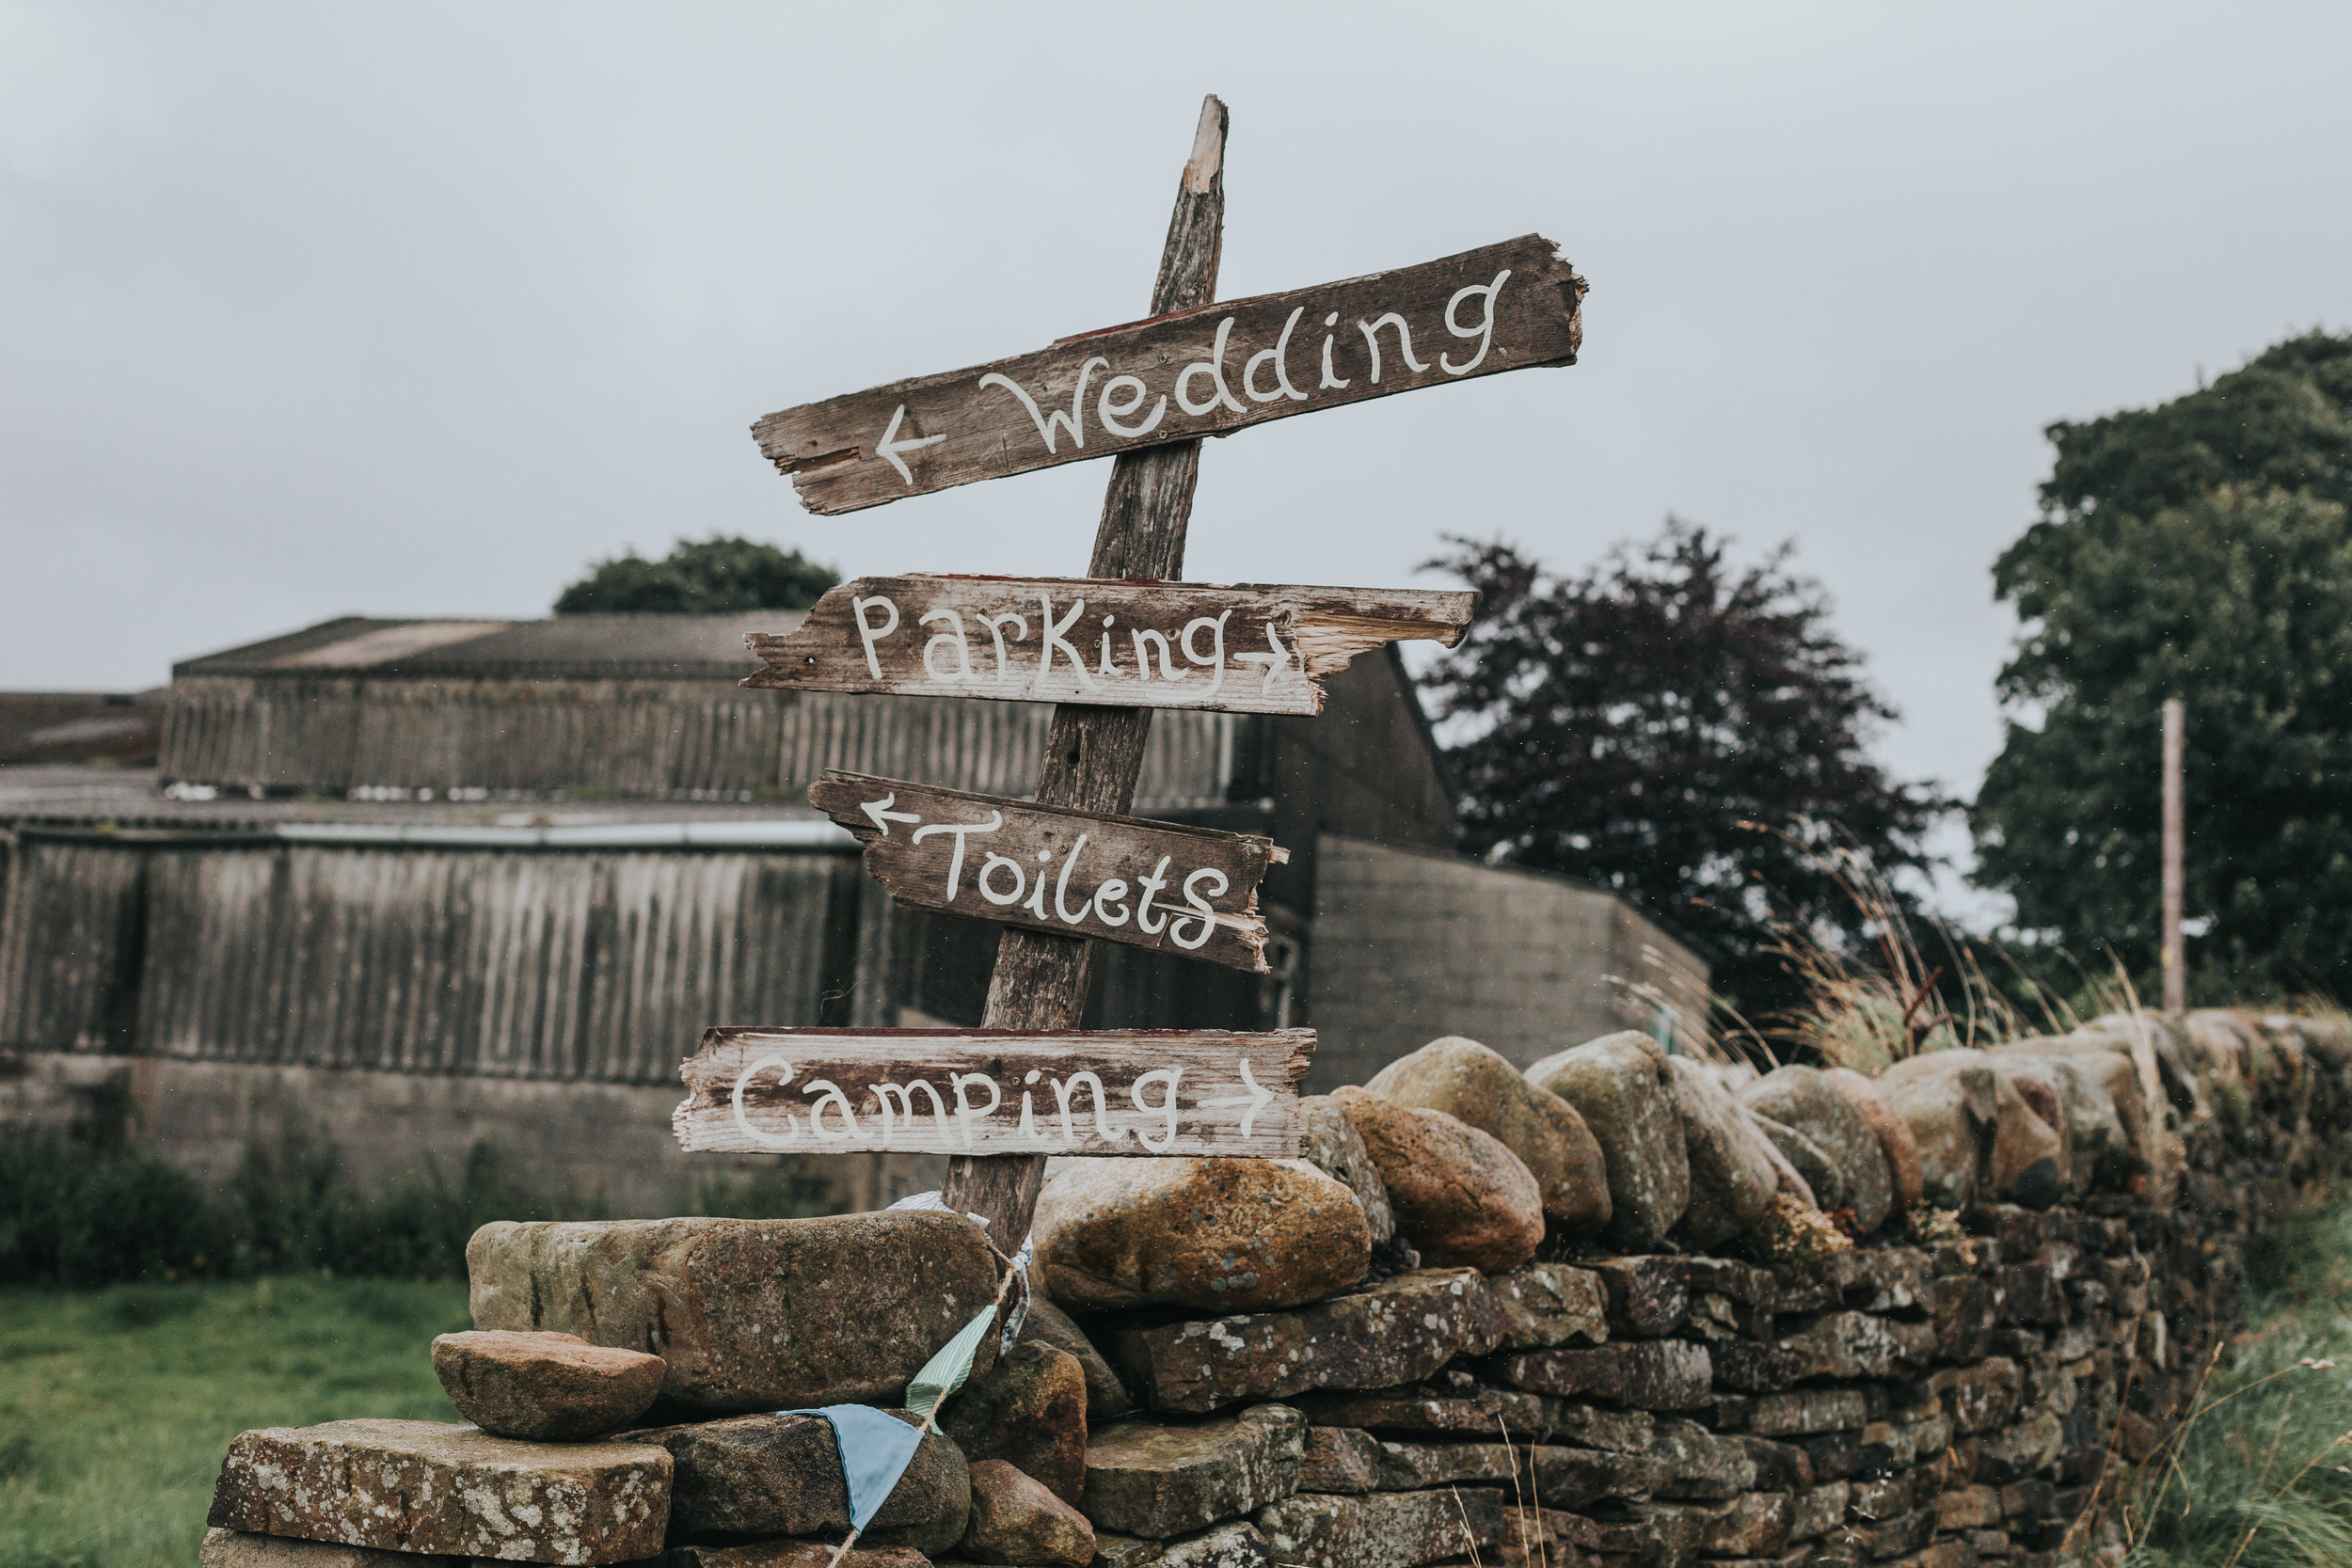 Hand made signs on wood reading WEDDING, PARKING, TOILETS AND CAMPING.